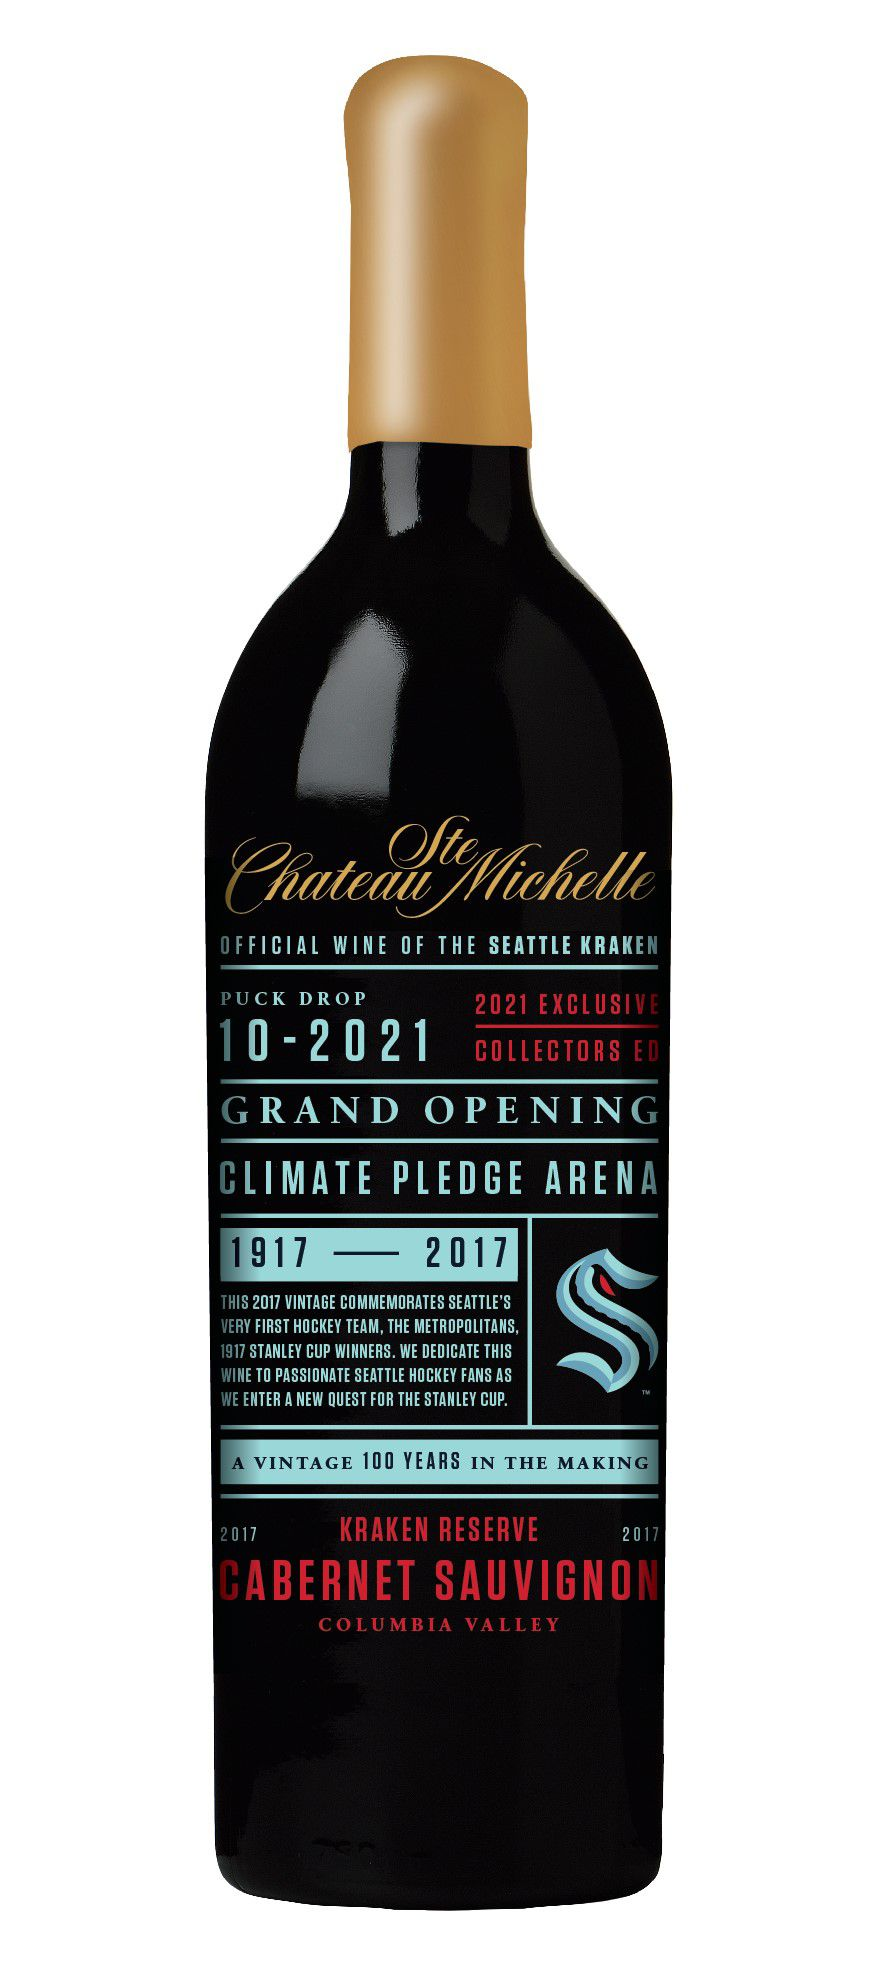 """A bottle of Chateau Ste. Michelle Cabernet Sauvignon, with Seattle Kraken branding and the words """"Climate Pledge Arena"""" across the label"""